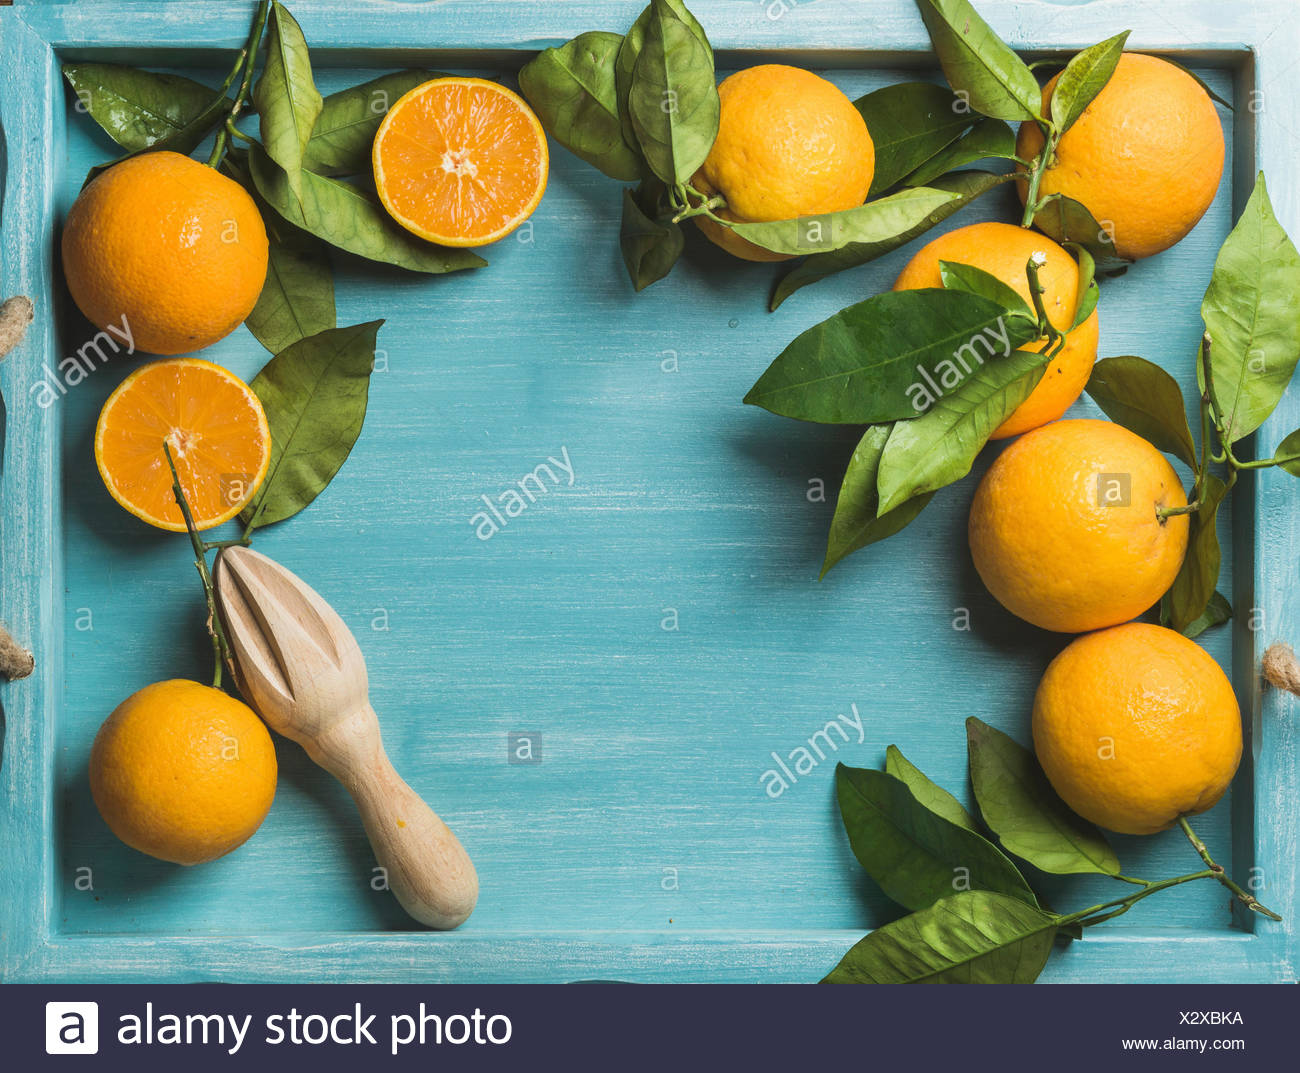 Fresh oranges with leaves on blue painted wooden background, top view, copy space, horizontal composition - Stock Image